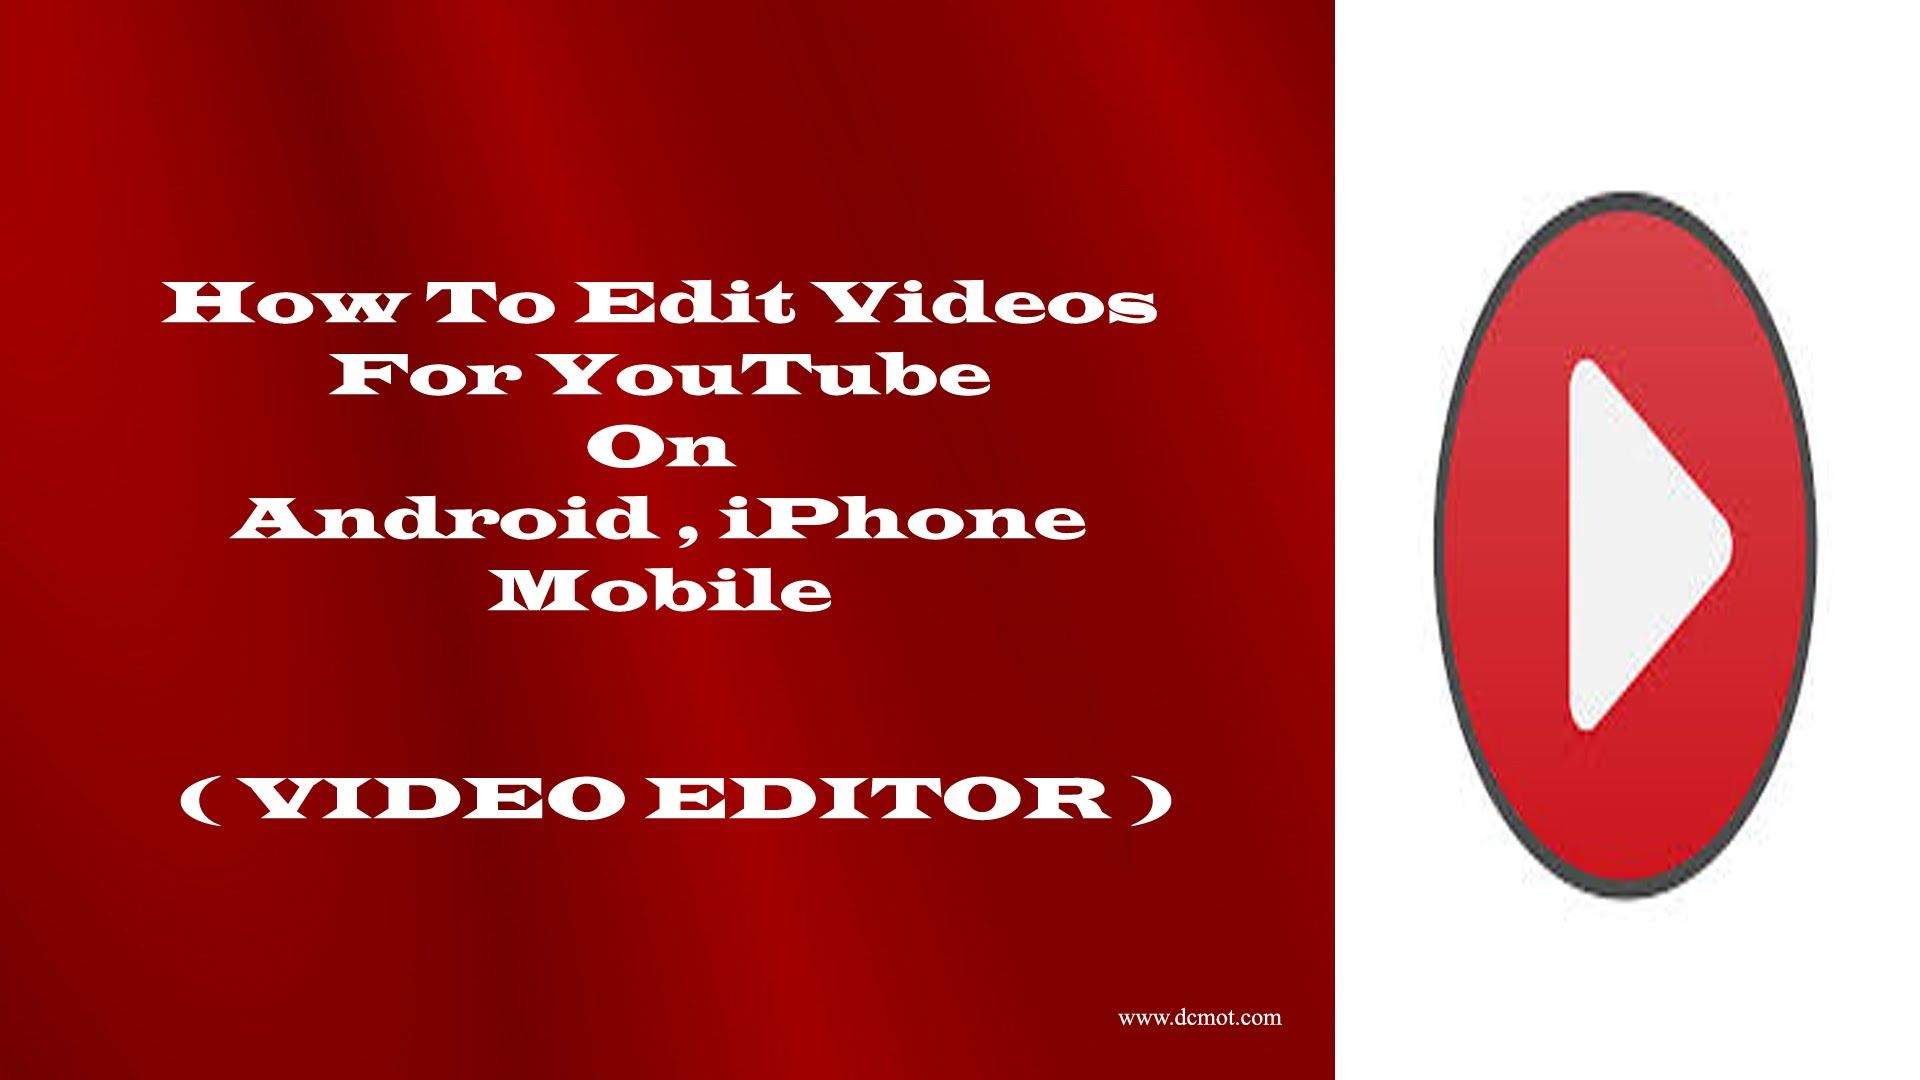 how to edit video for youtube on android and iPhone | video editor | | Video  editing, Iphone video, Iphone video editor